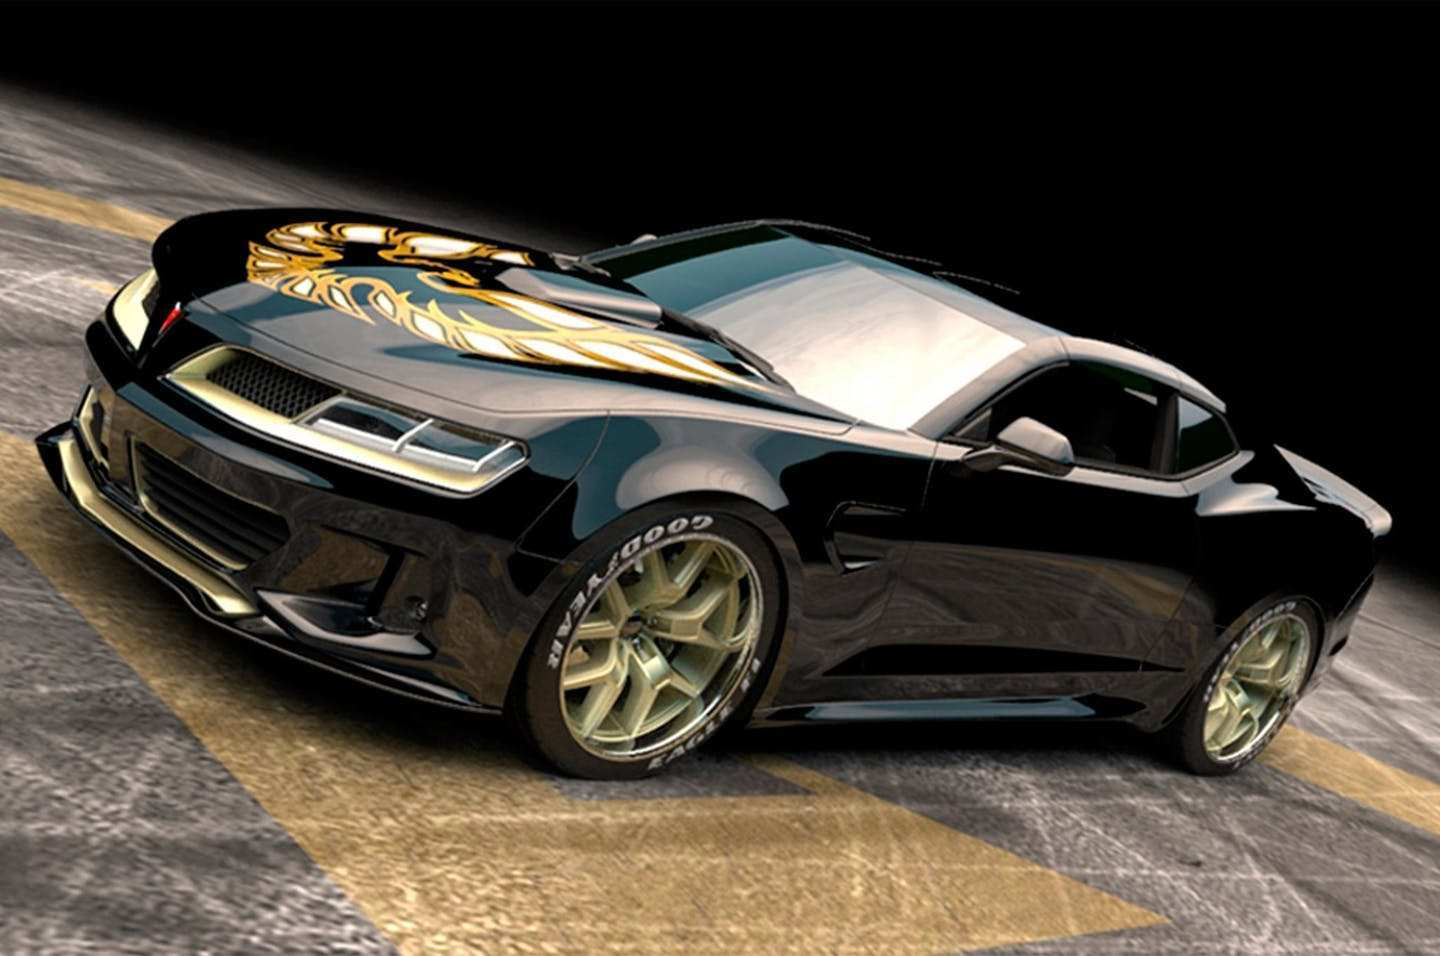 43 Best Review Pictures Of A Trans Am New Review by Pictures Of A Trans Am